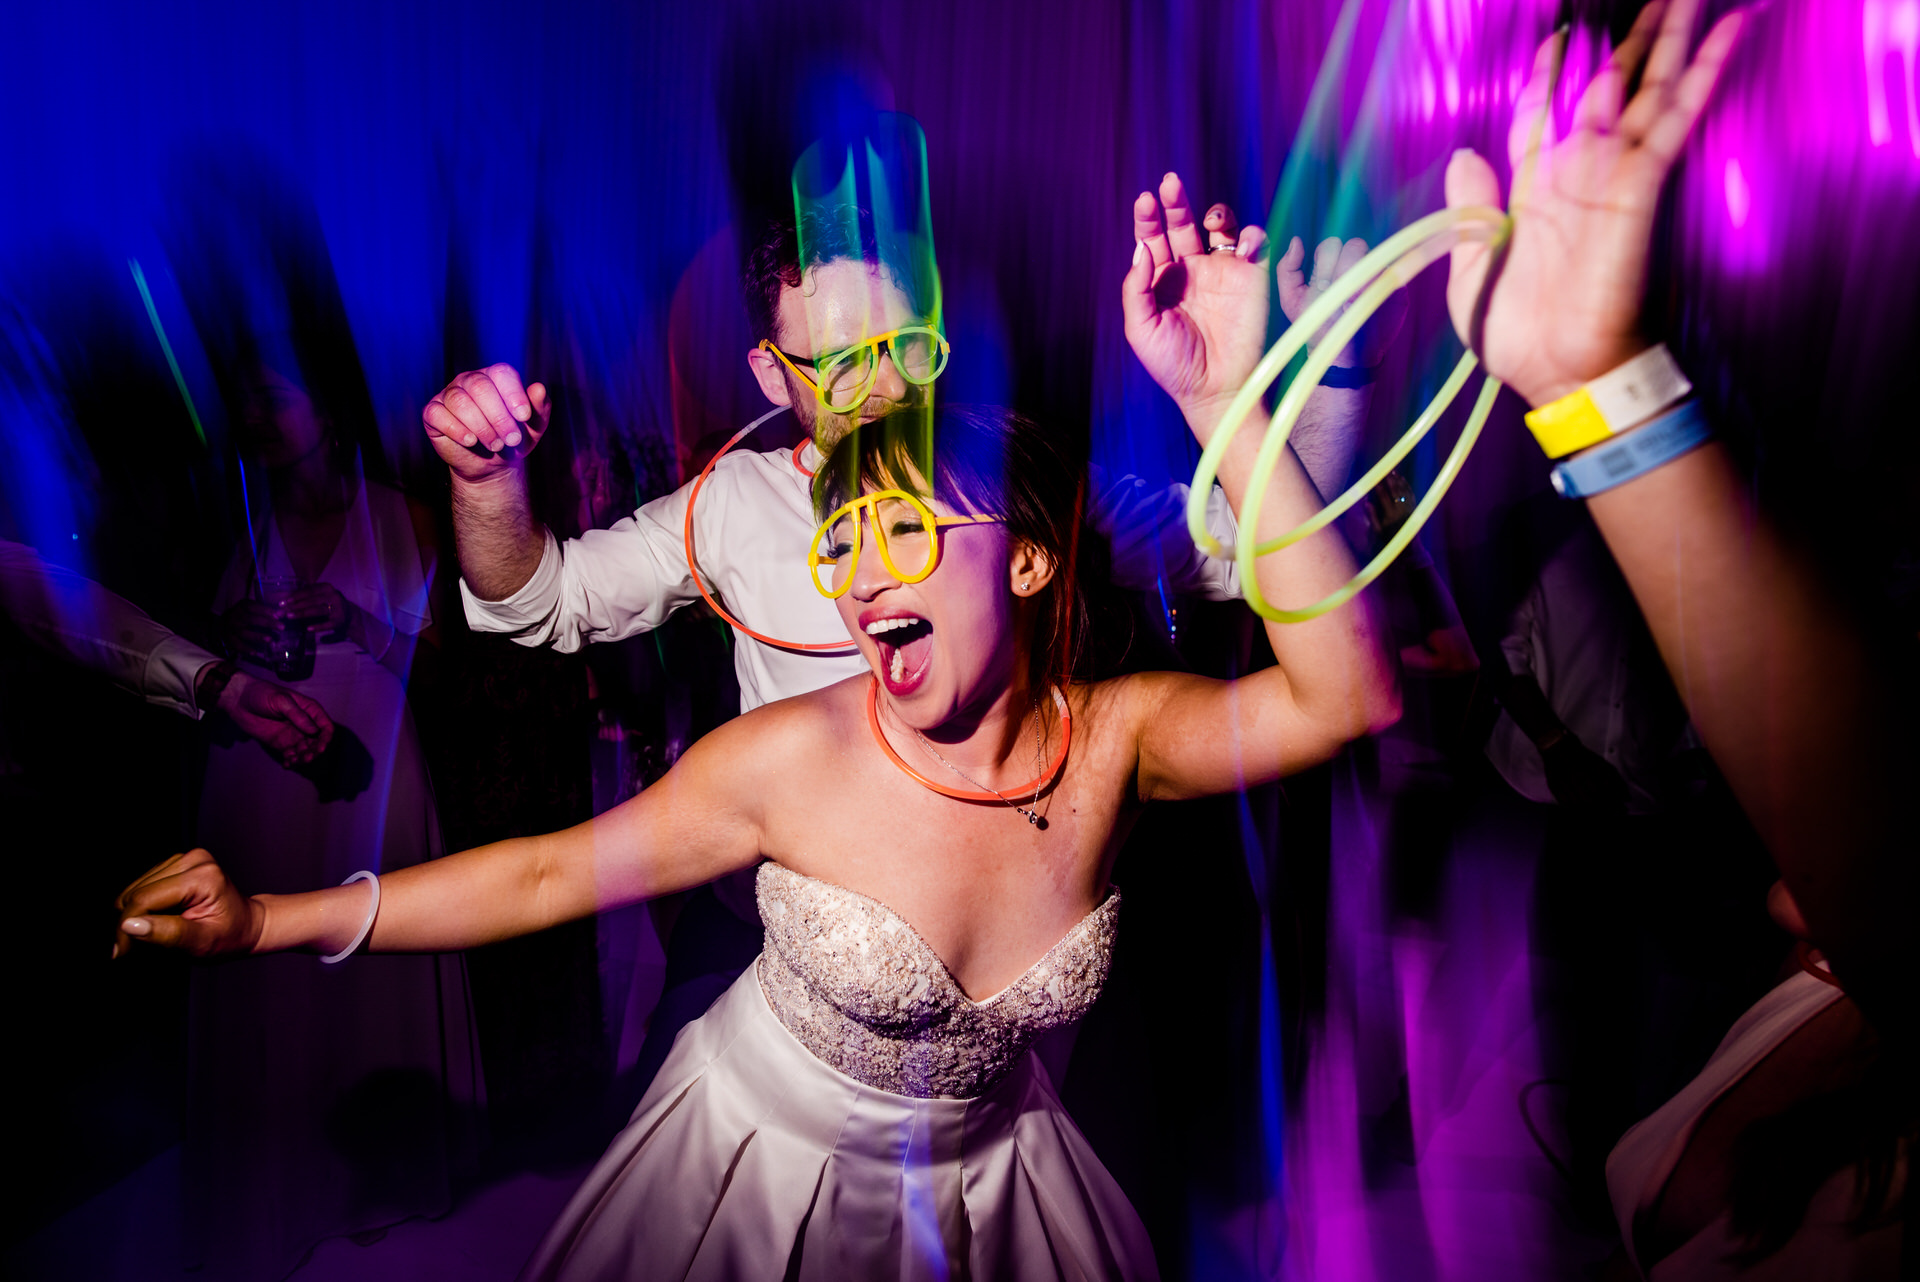 The wedding photographers camera shutter speed picks up motion and the moment freezes by the flash on the dance floor.